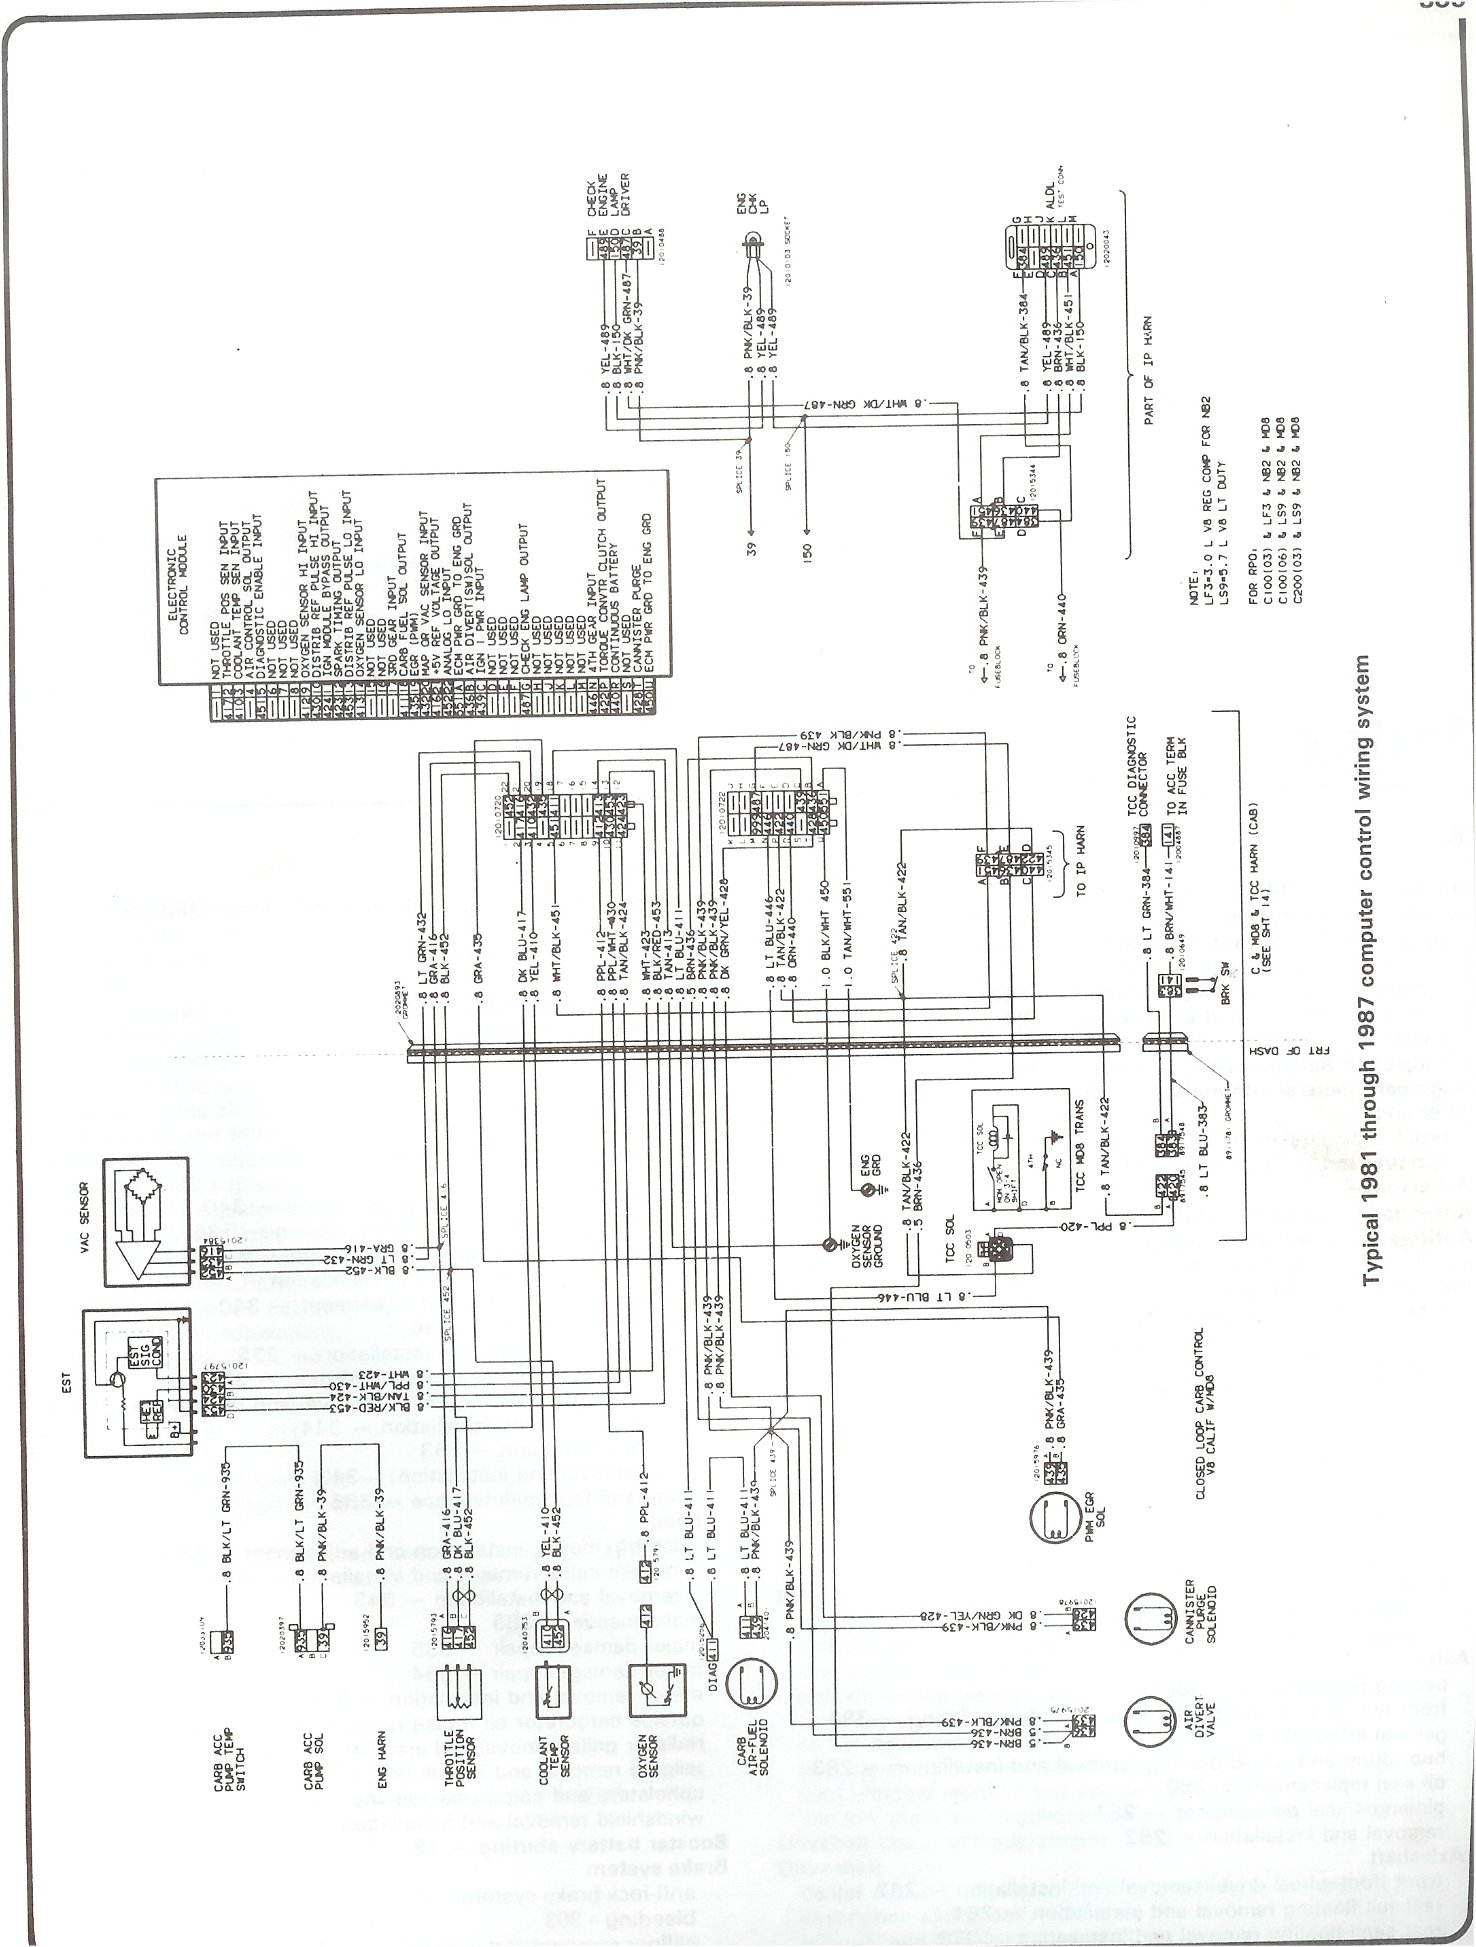 2002 chevy s10 stereo wiring diagram